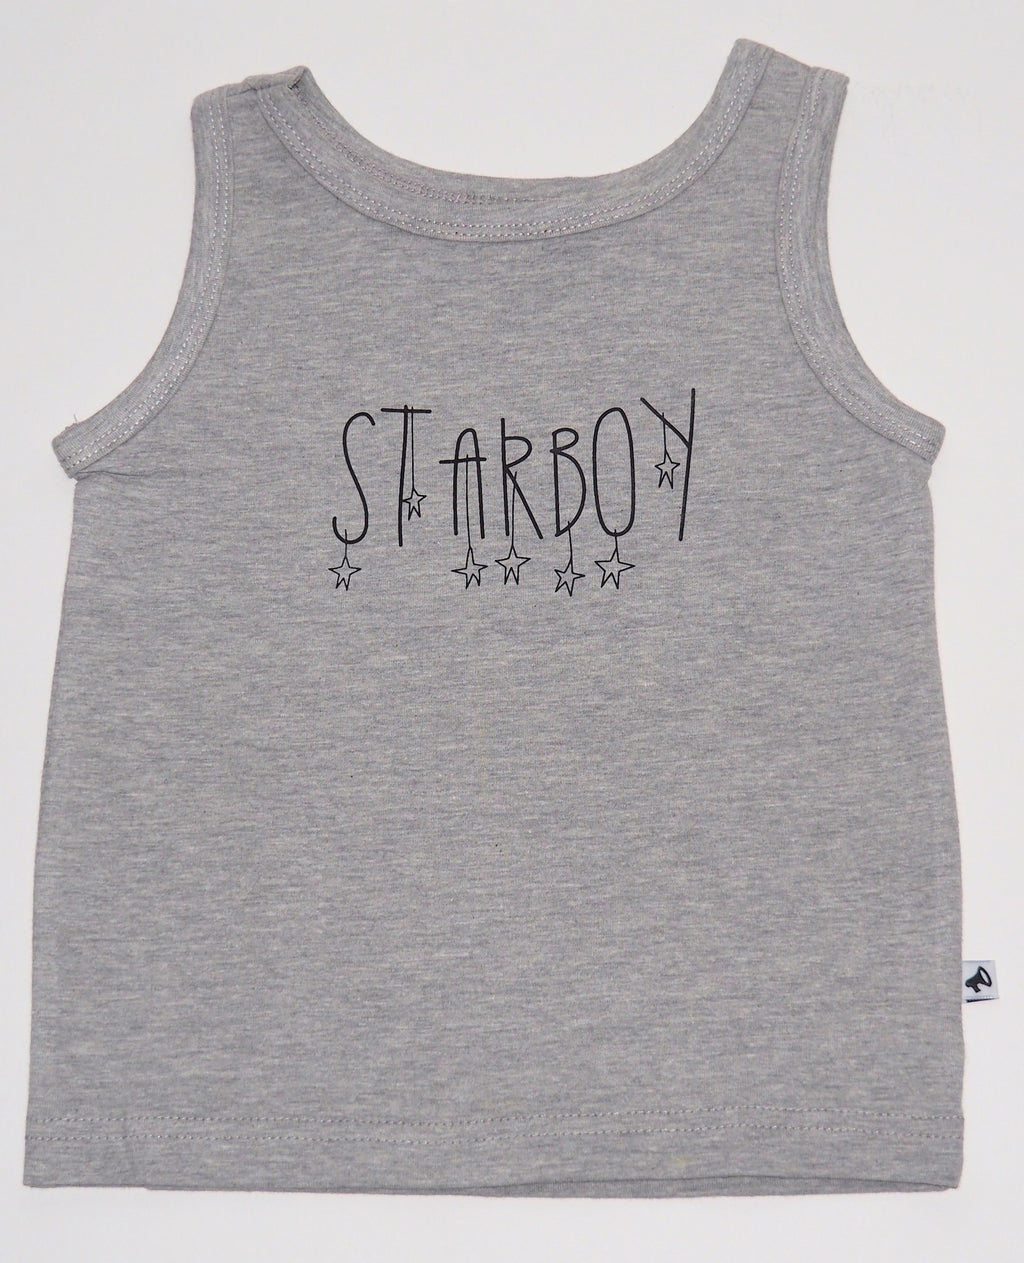 Cos I said so! Tank top 'starboy'